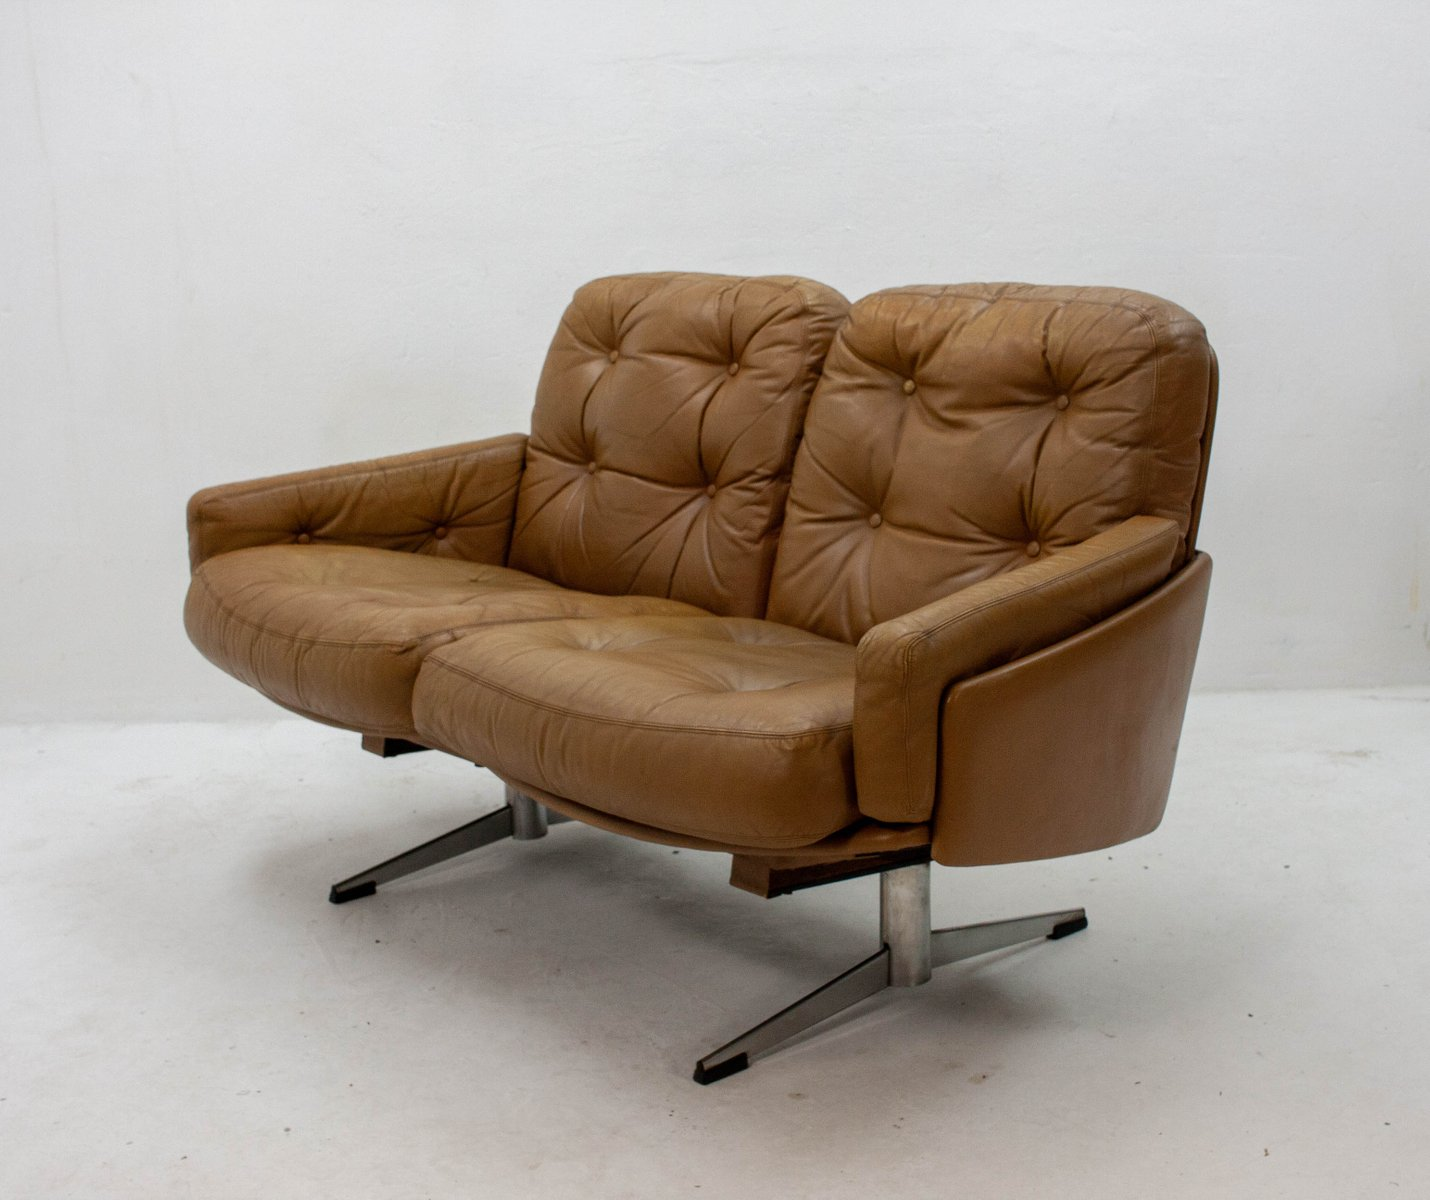 Curved Leather Sofa 1960s 6 2 103 00 Price Per Piece